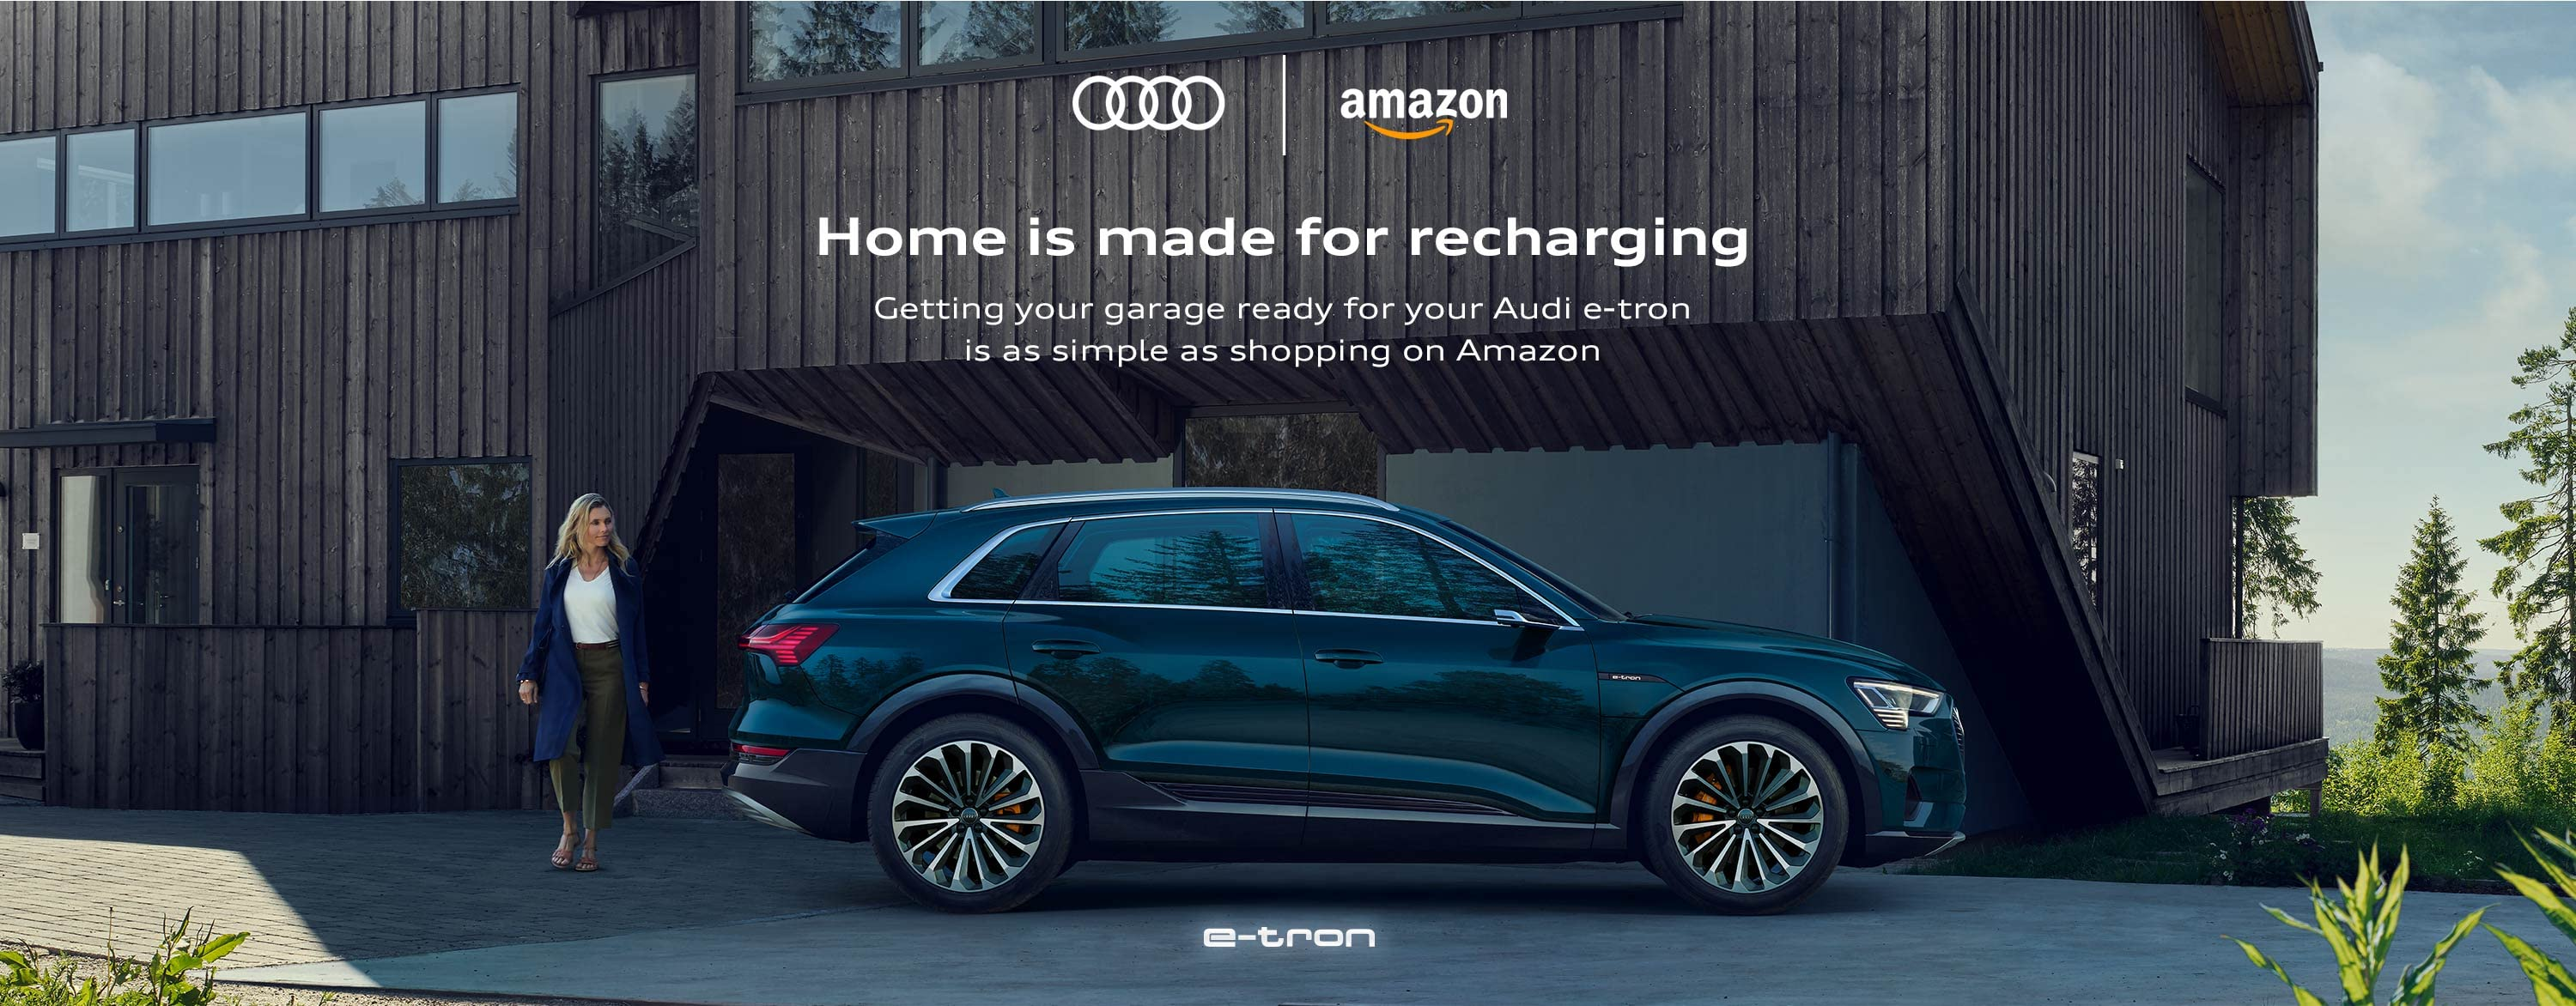 home is made for recharging. getting your garage ready for your audi e-tron is as simple as shopping on amazon